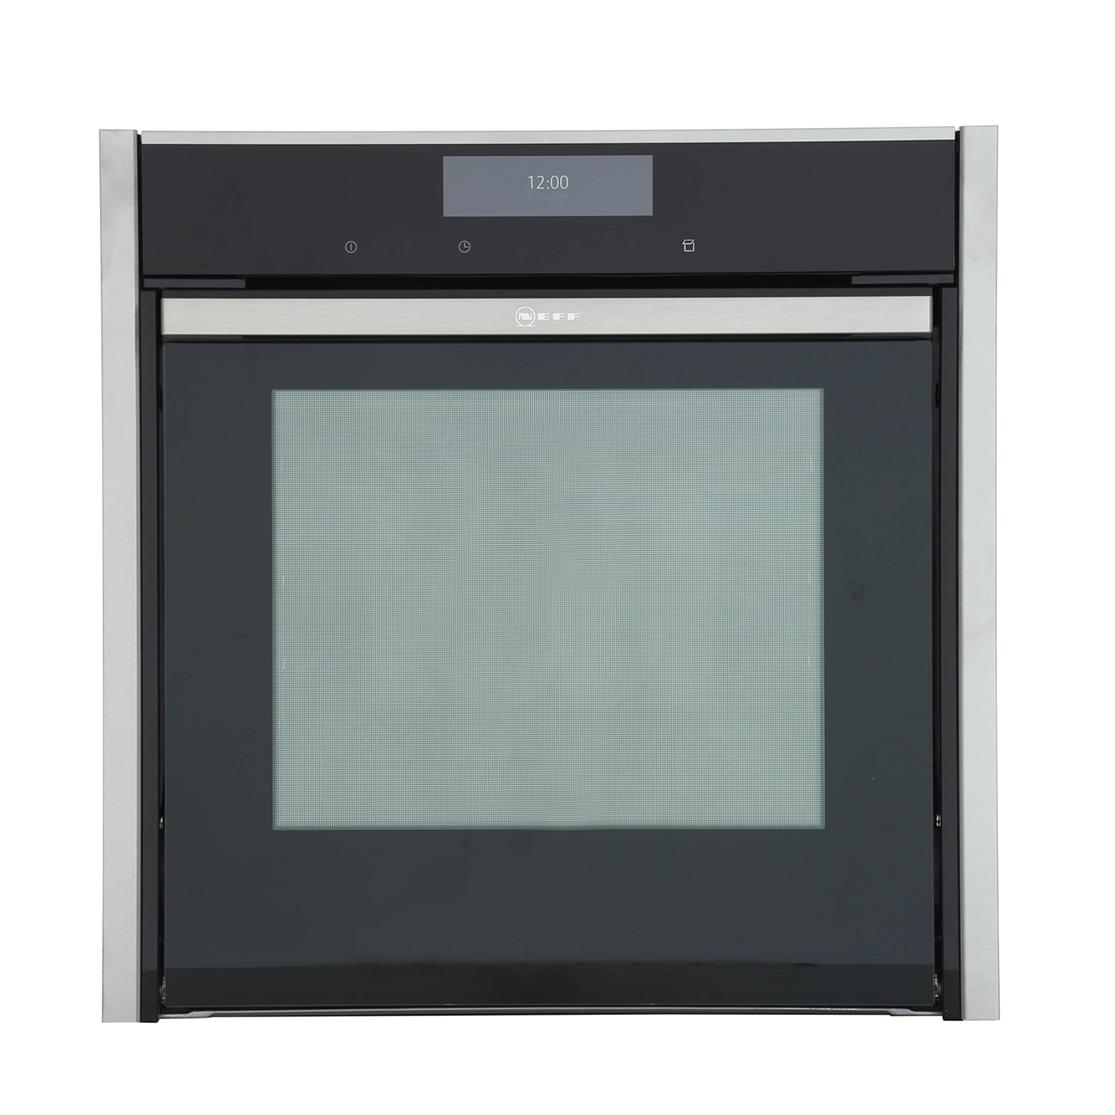 Buy neff b58vt68n0b single built in electric oven stainless steel marks electrical - Neff electric ...